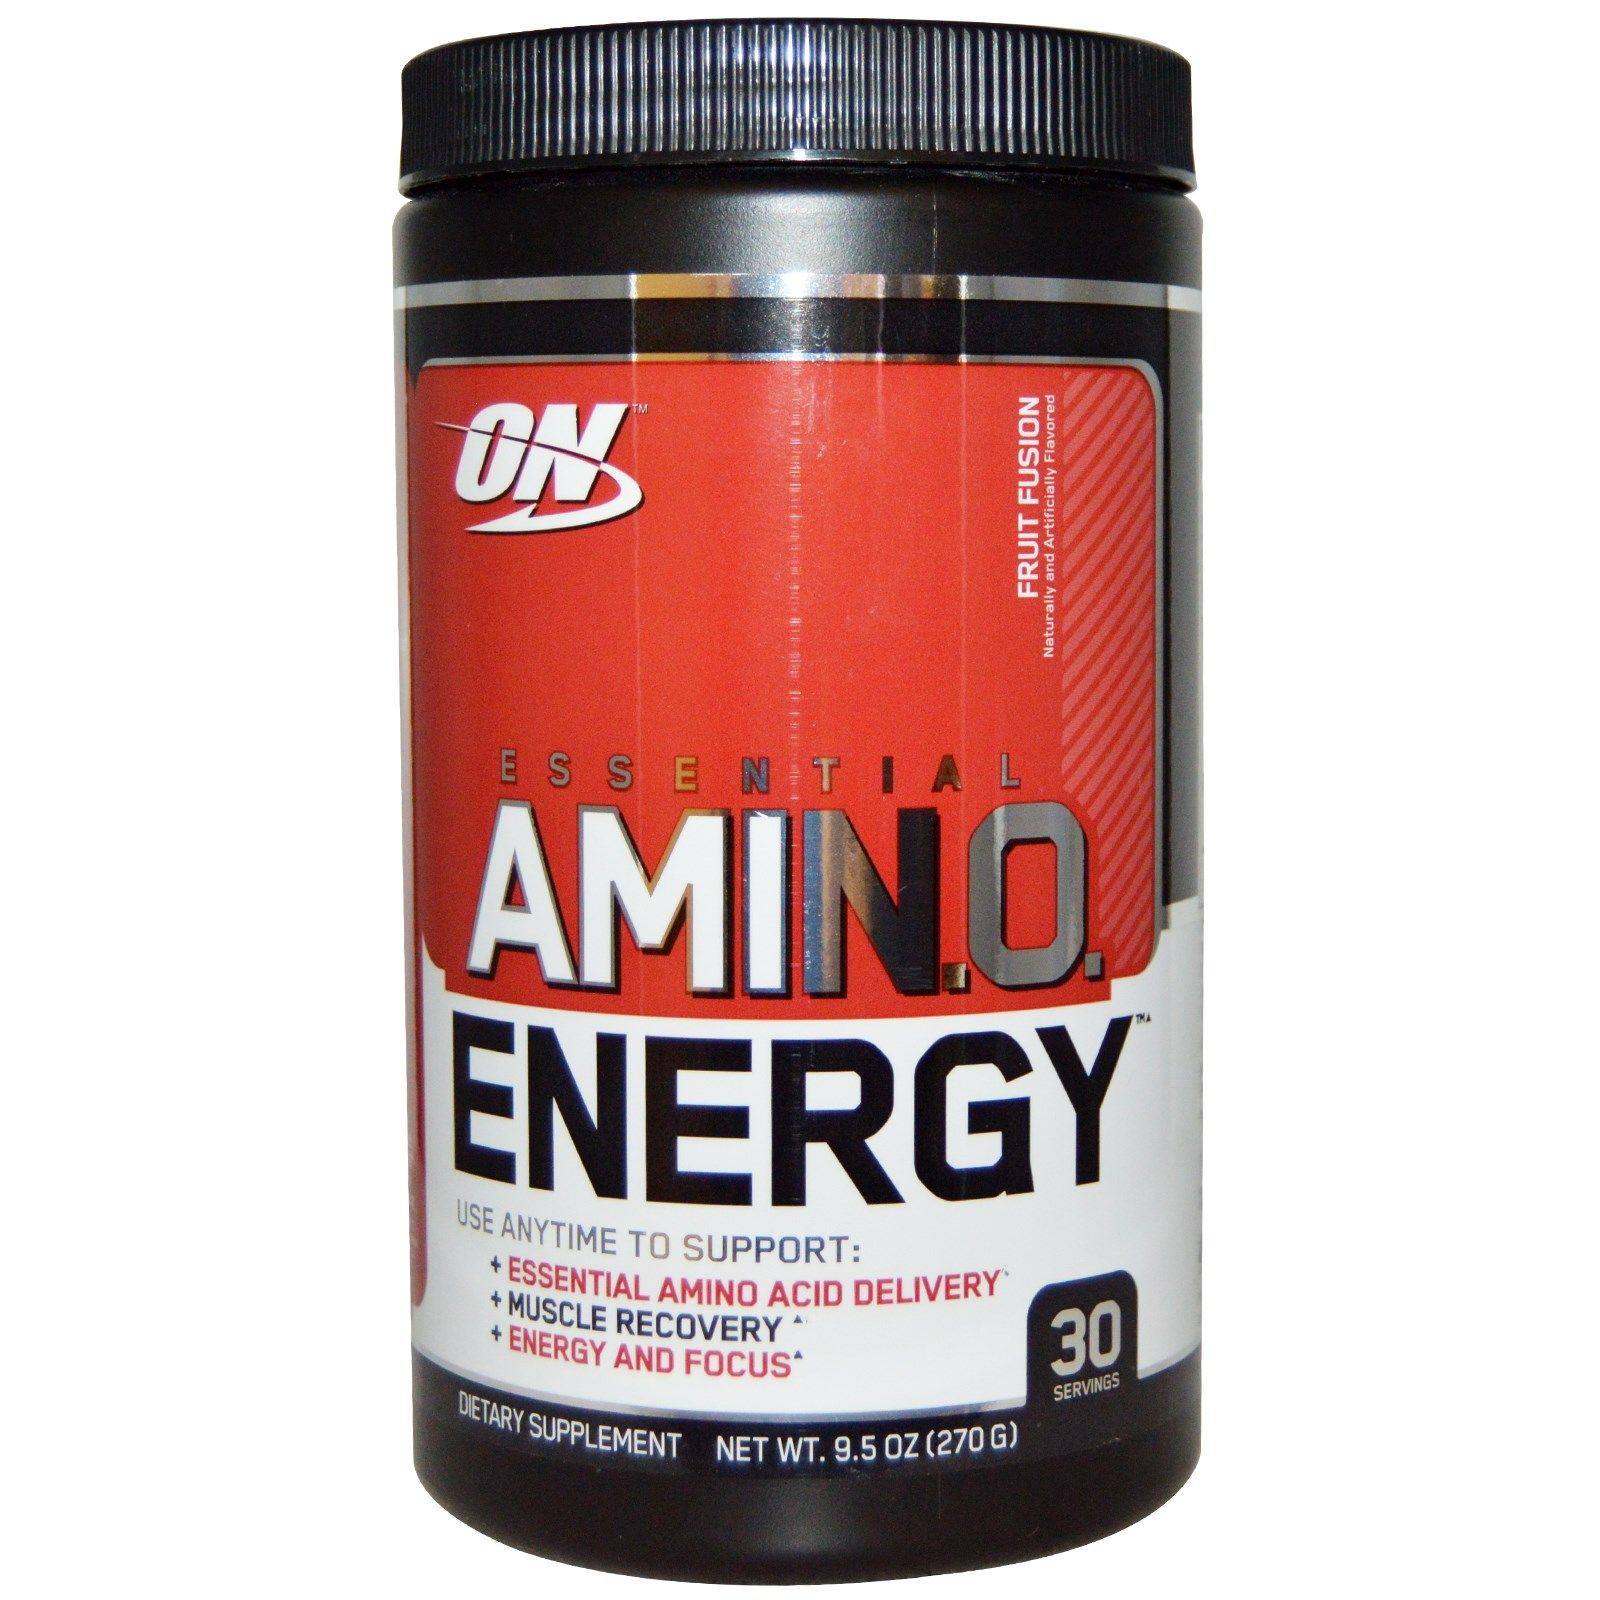 Aminokyseliny Amino Energy 270 g - Optimum Nutrition cola